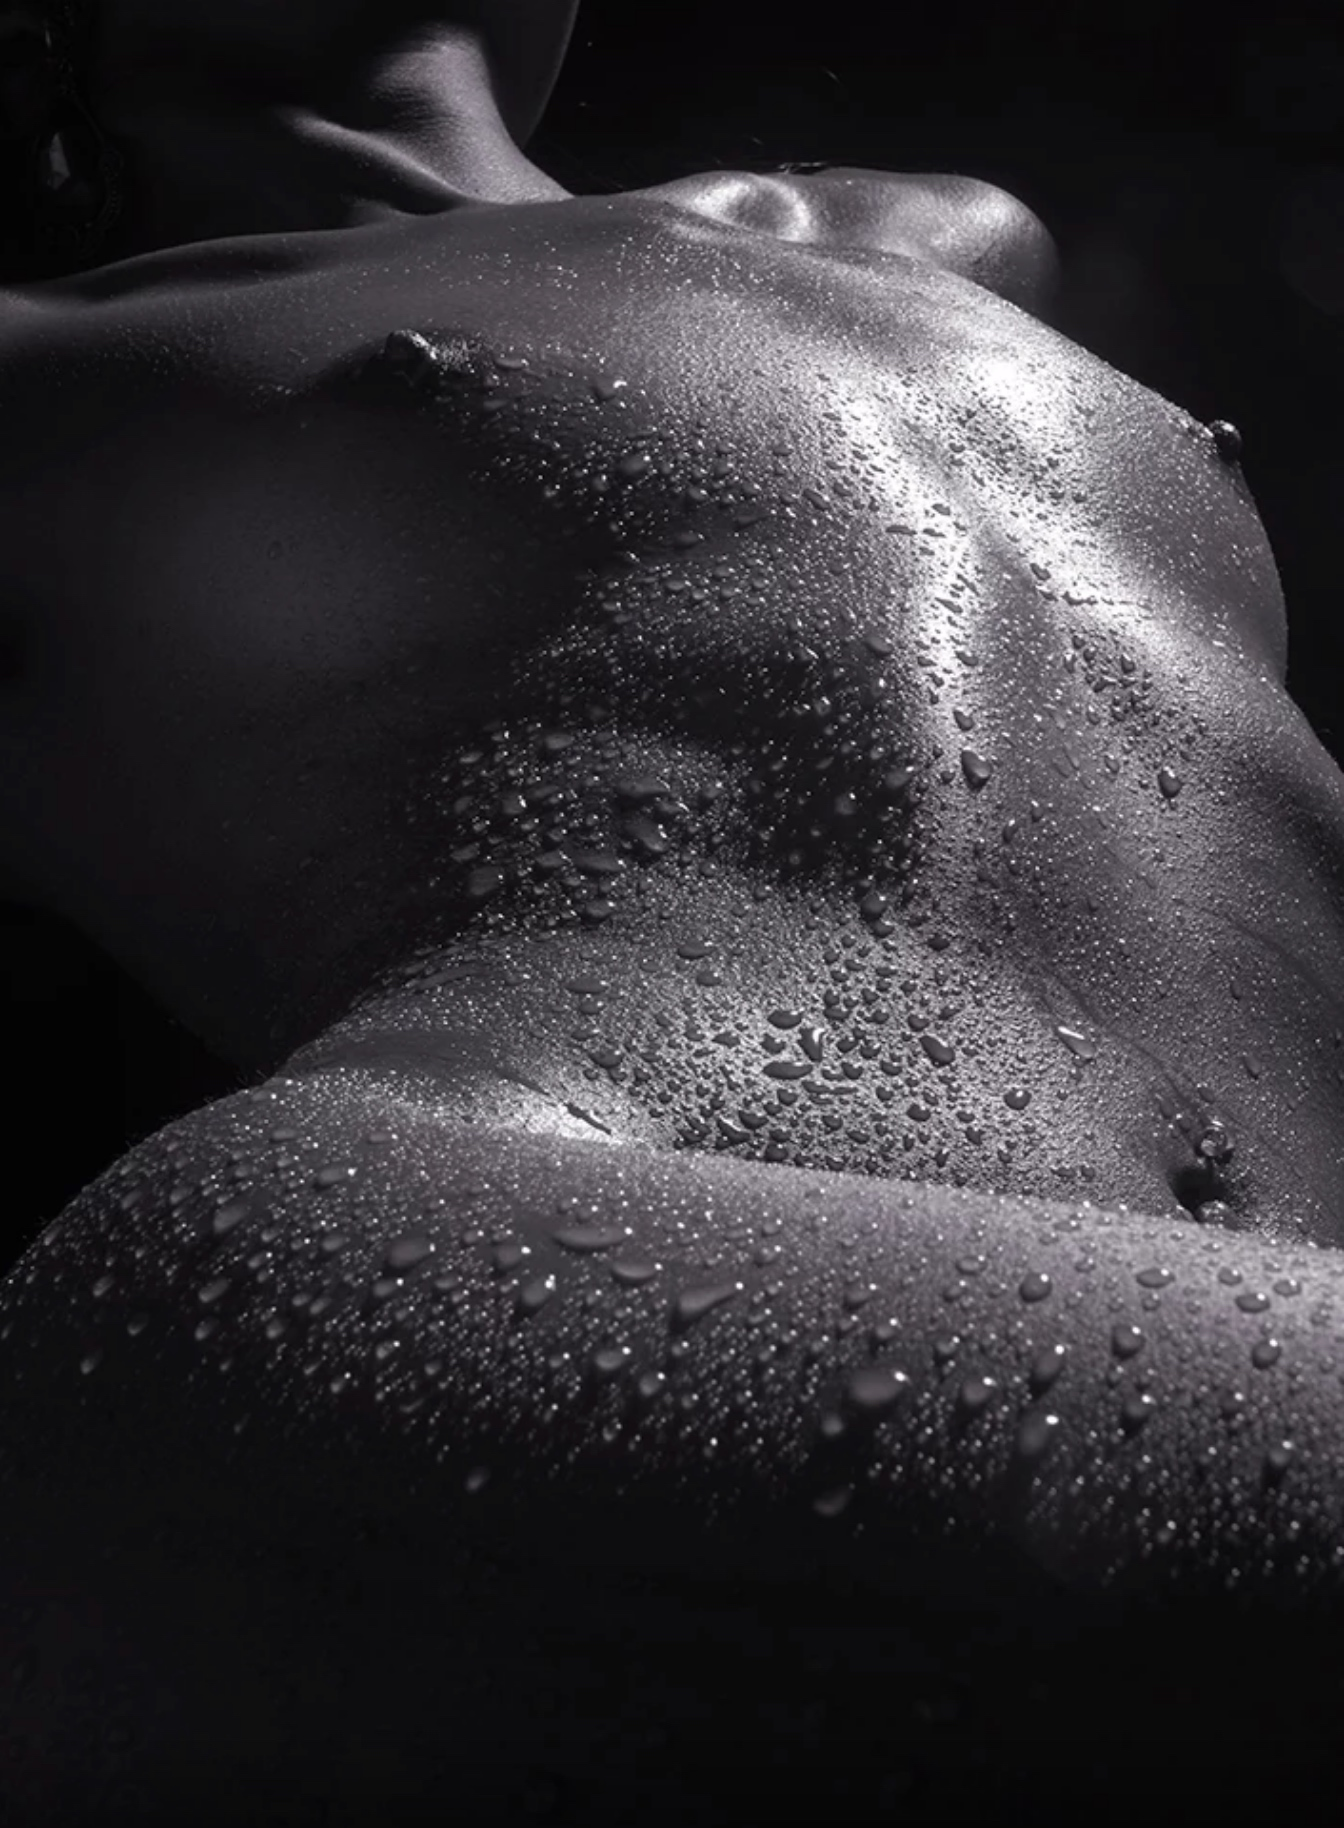 Wet Body Scape